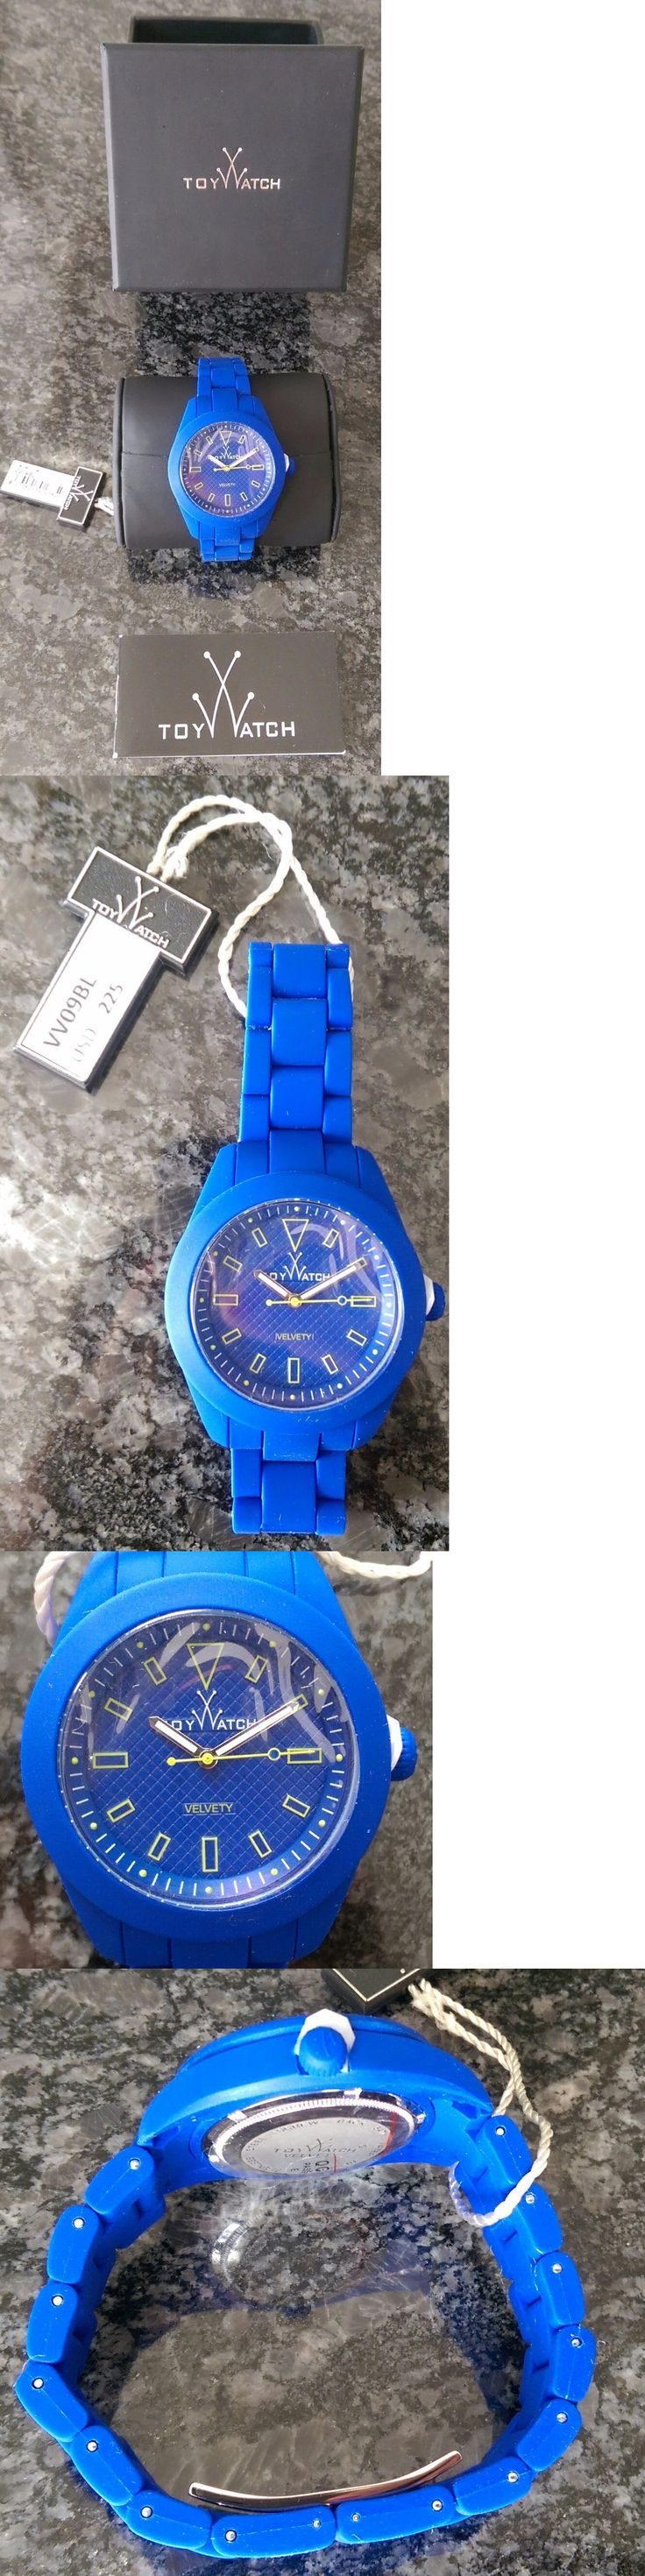 Other Jewelry and Watches 98863: (A) Toywatch Velvety Blue Ladies Watch Vv09bl -> BUY IT NOW ONLY: $49.99 on eBay!